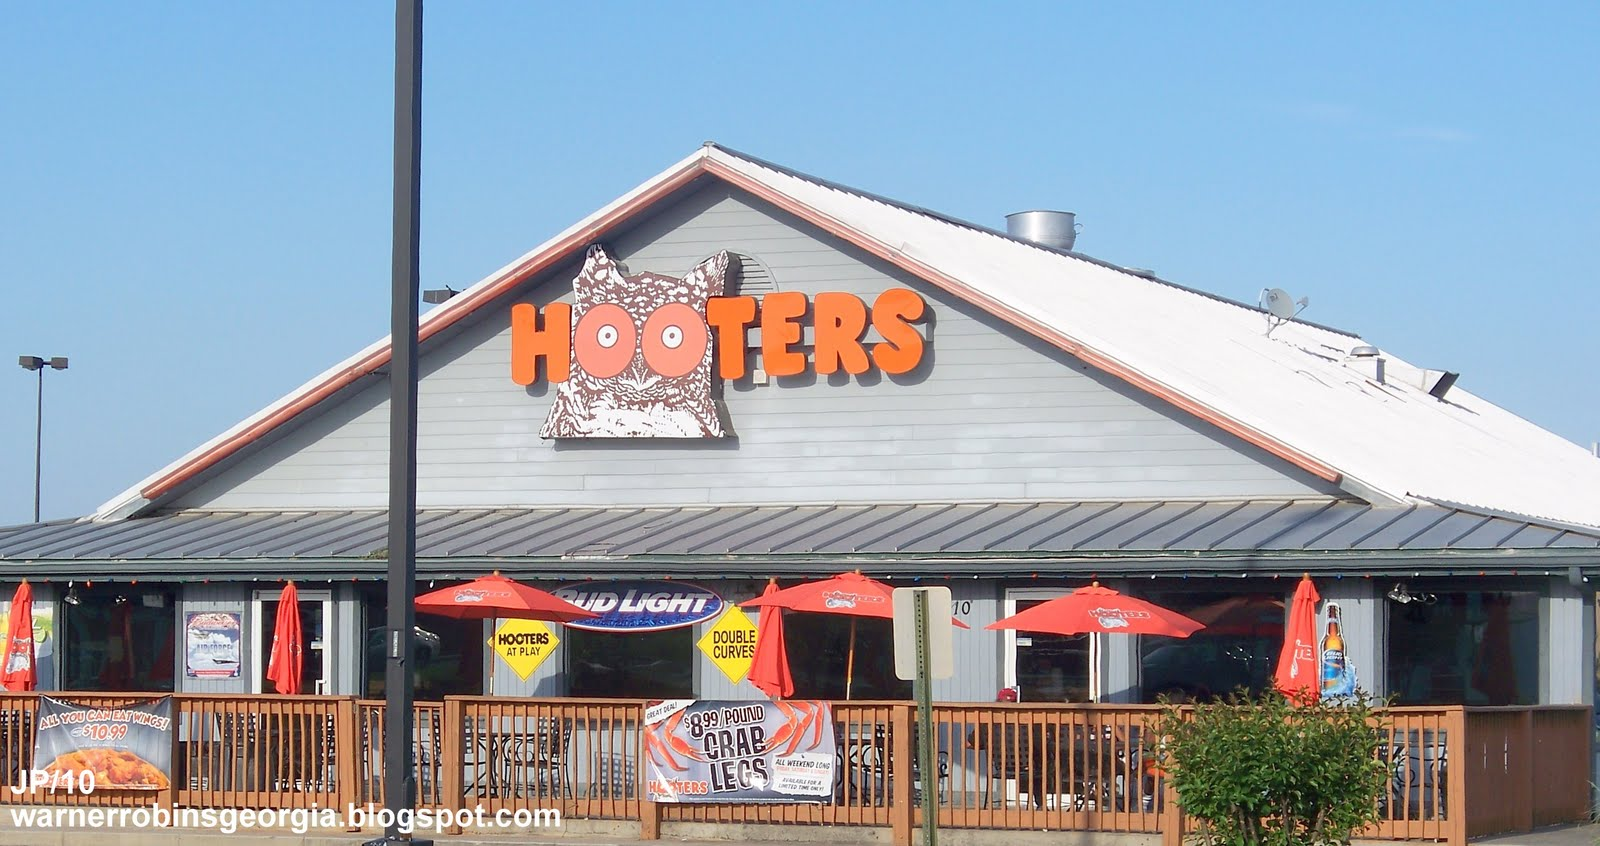 CLOSED quot  HOOTERS WARNER ROBINS GEORGIA  Hooters Hot Wings Restaurant    Hooters Restaurant Building